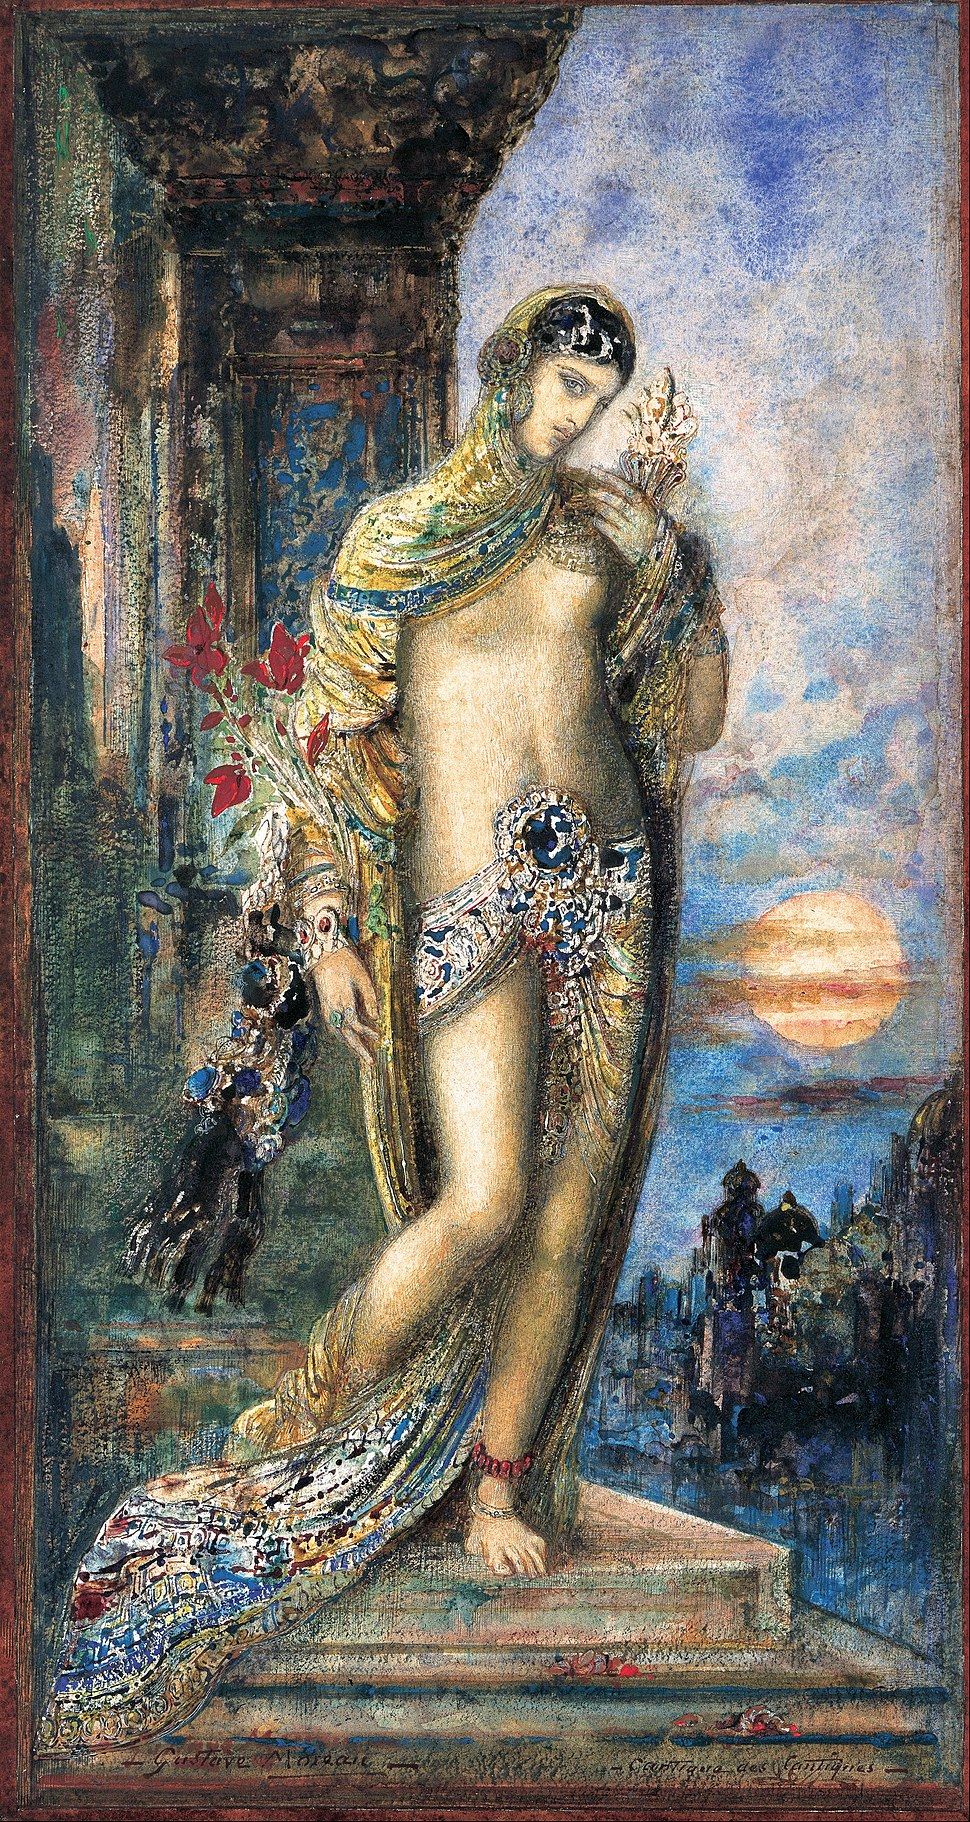 Gustave Moreau - Song of Songs (Cantique des Cantiques) - Google Art Project